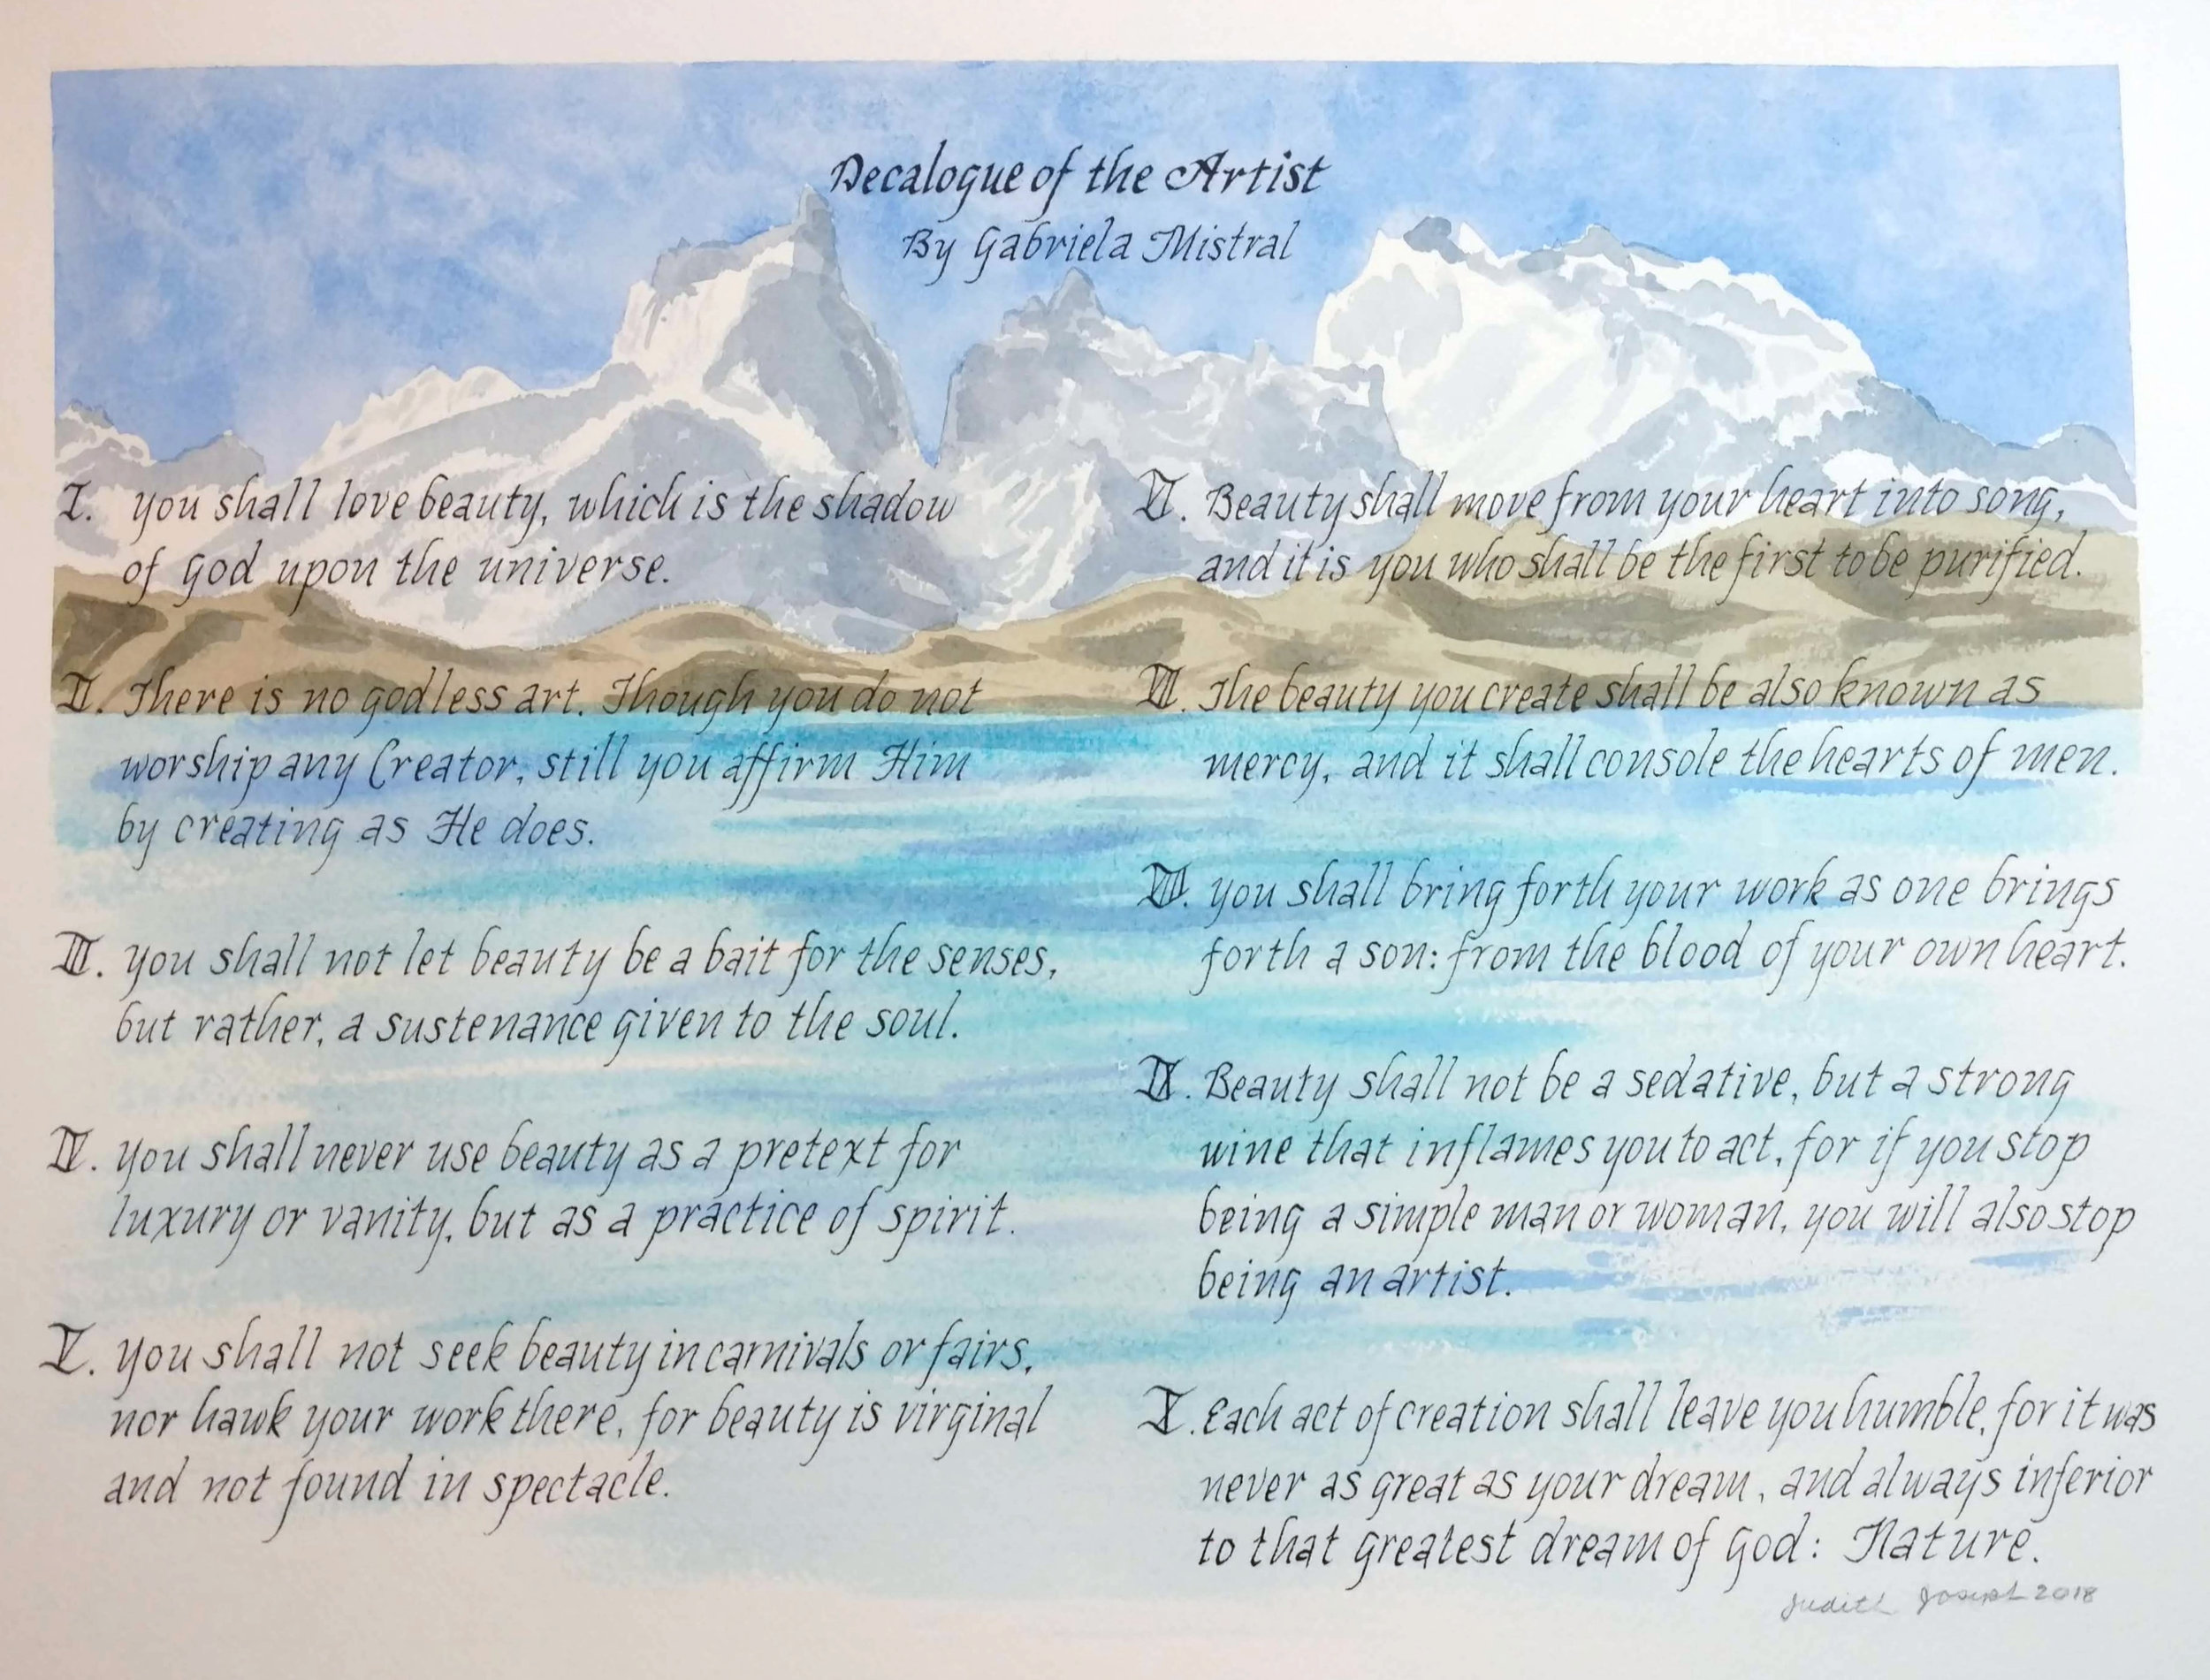 quotations and certificates — Ketubah Art by Judith Joseph